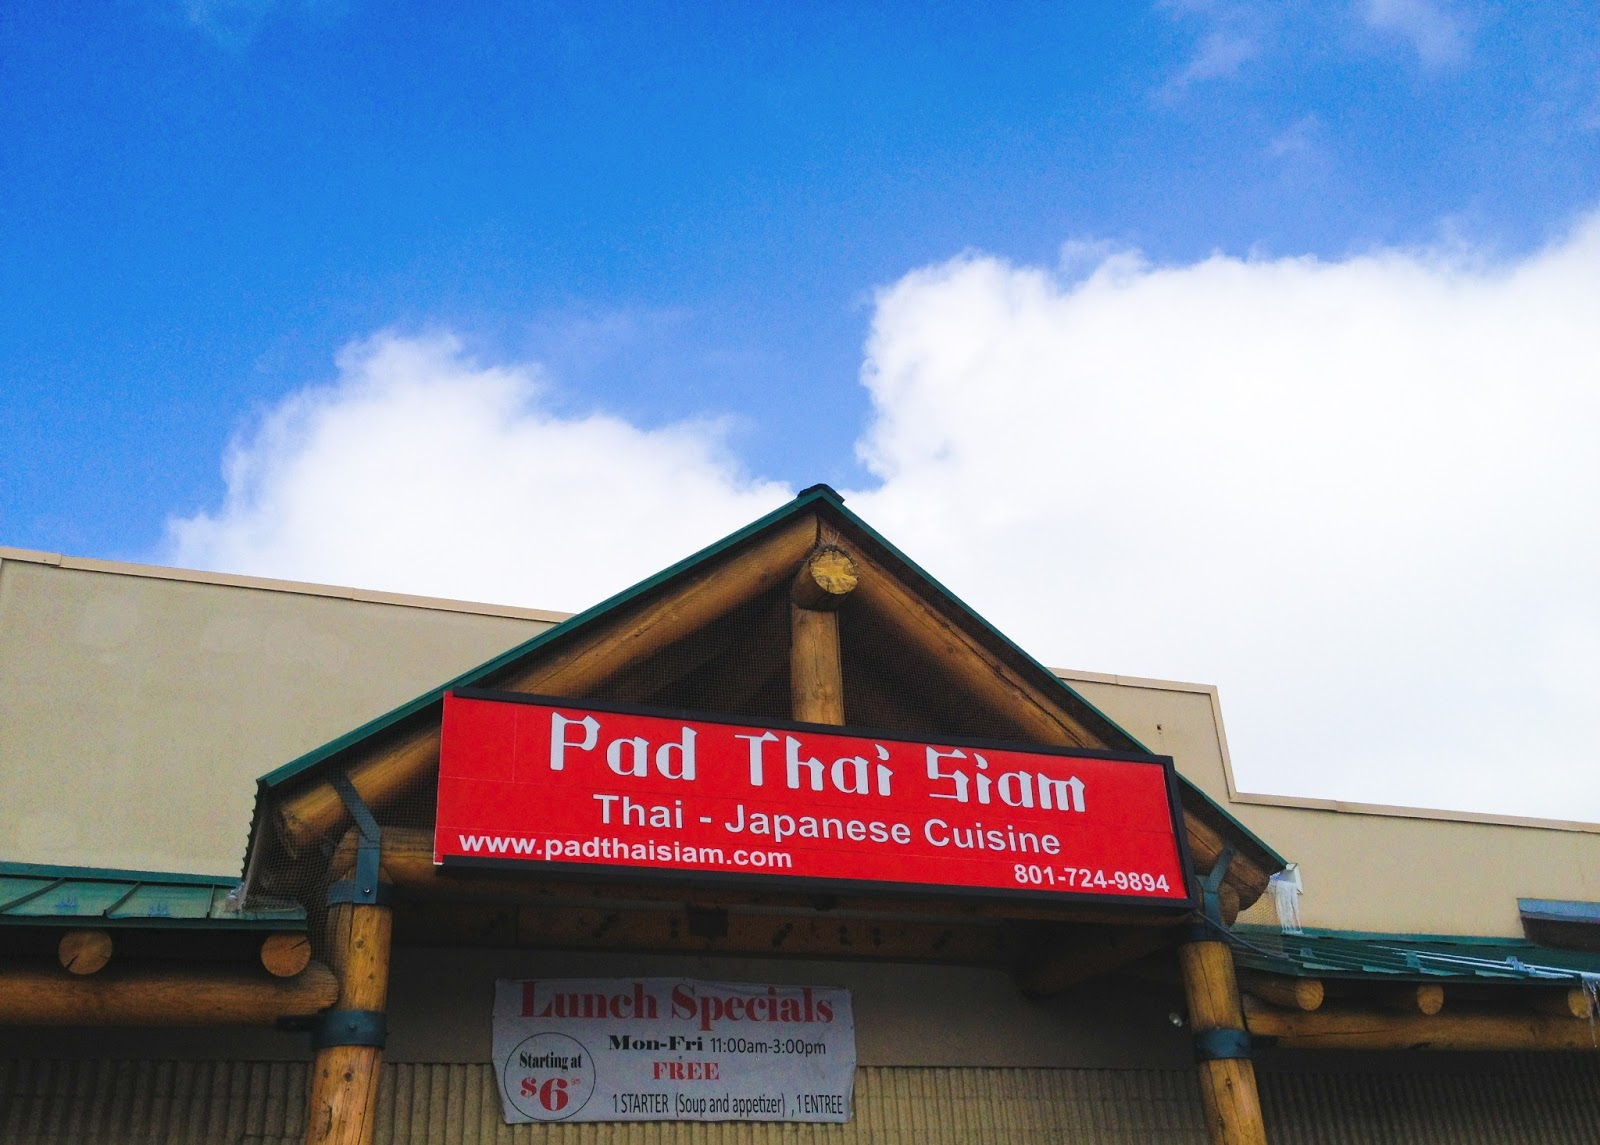 food blog, food reviews, utah food review, utah county food review, pad thai saim, thai food, fashion blog, fashion blogger, style blog, style blogger, mens fashion, mens fashion blog, mens style, mens style blog, womens style blog, anthropologie ootd blog, anthropologie ootd, anthropologie, ootd, mens ootd, womens ootd,